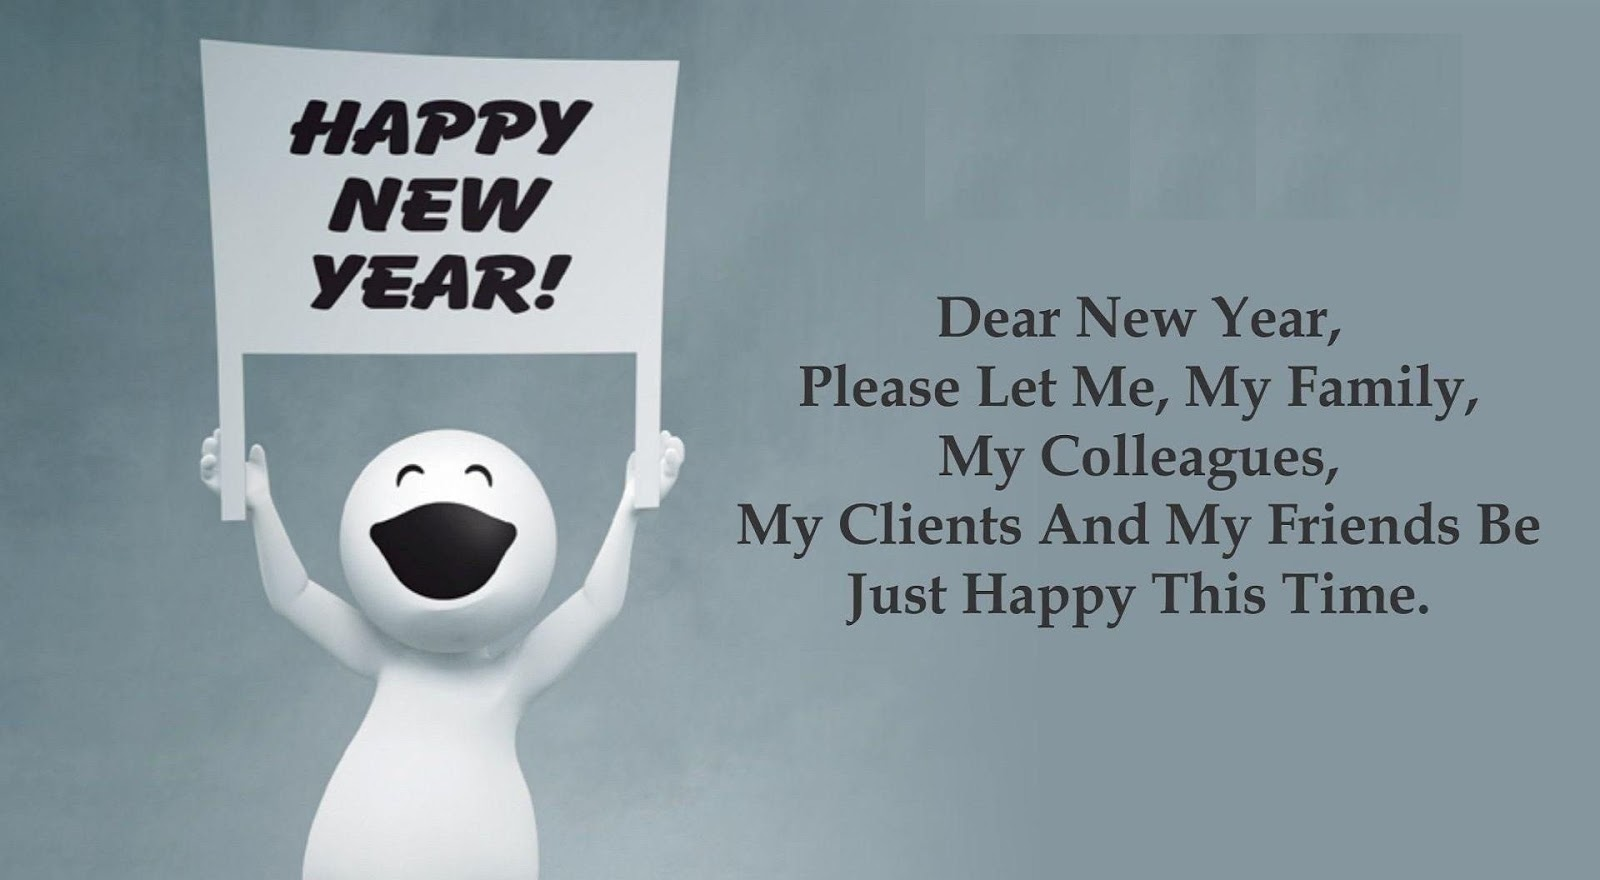 Happy new year 2014 simple wishing card funny} happy new year 2016 jokes sms happy new year 2017